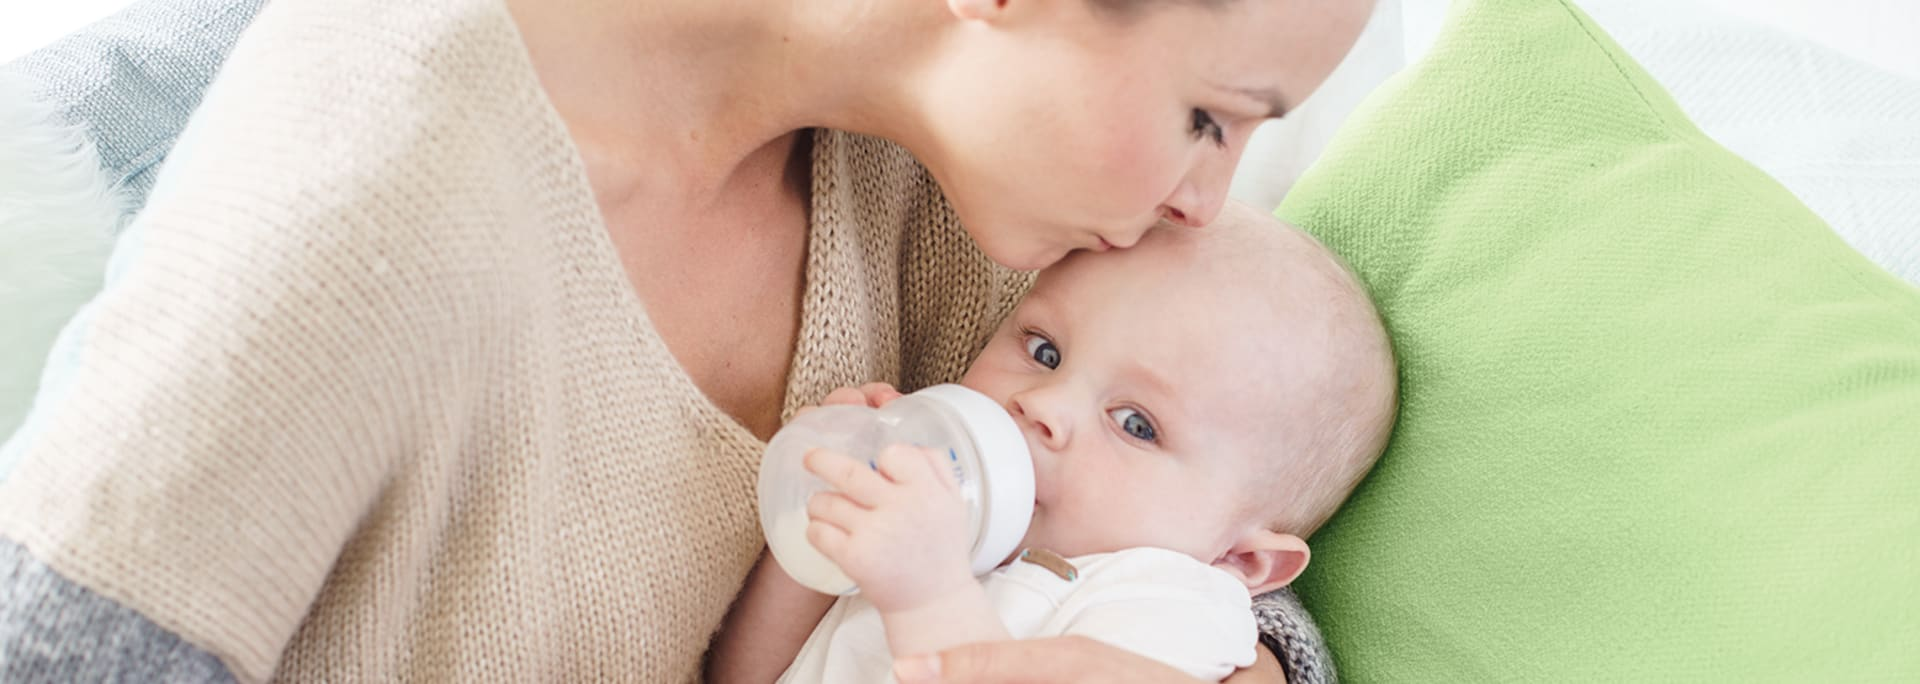 Header Baby - mother bottlefeeding baby